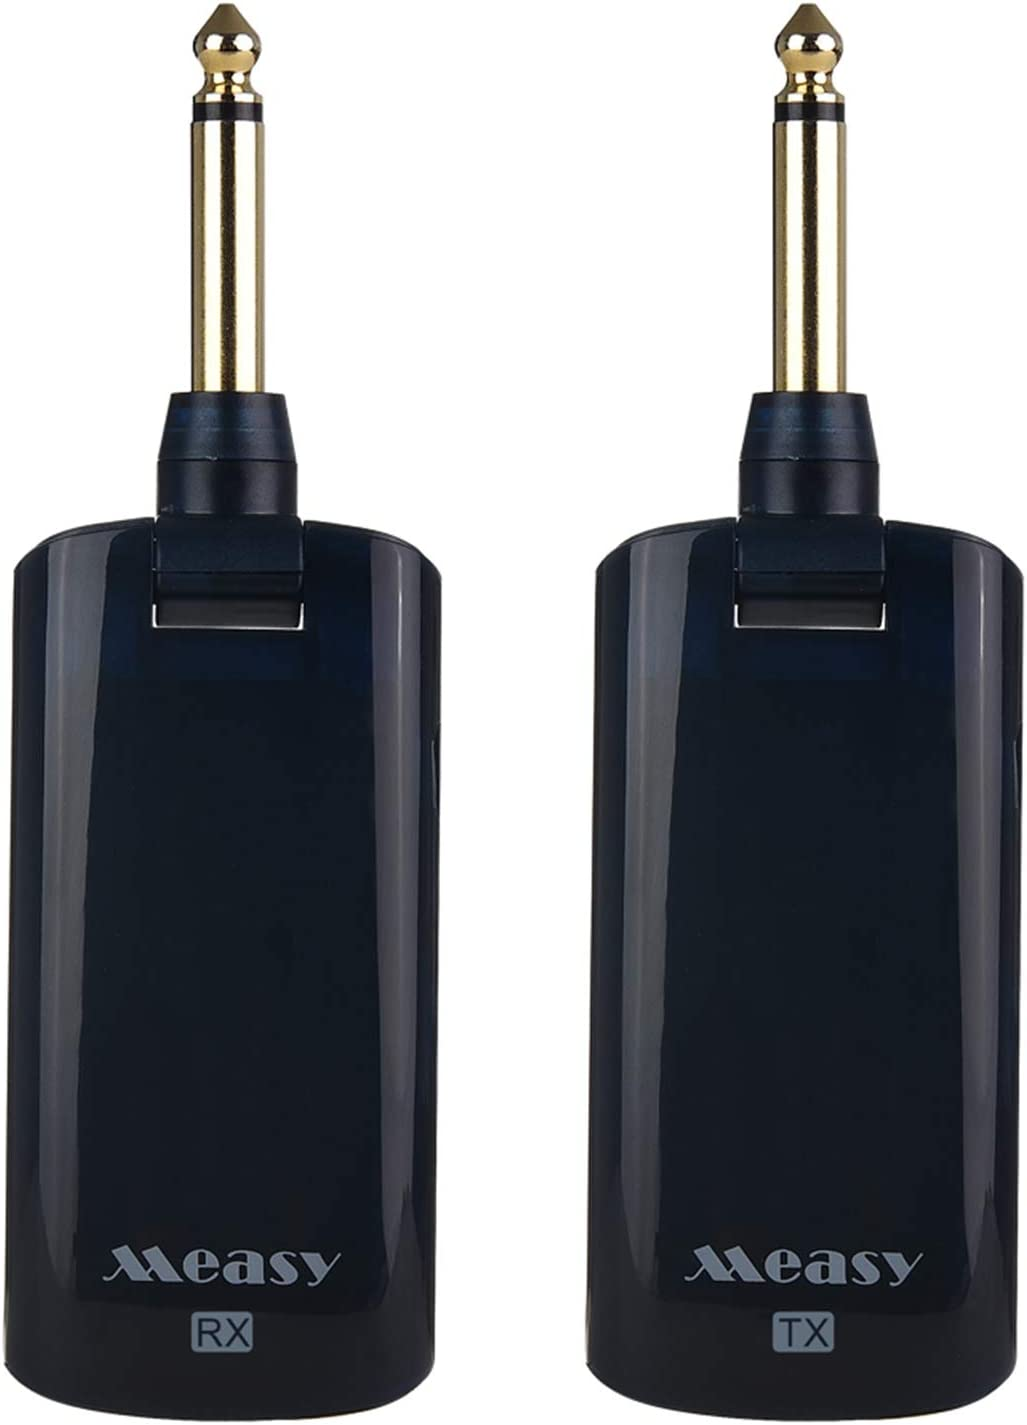 Wirelessly Guitar System 55% OFF Rechargeable Transmitter Receive Max 52% OFF